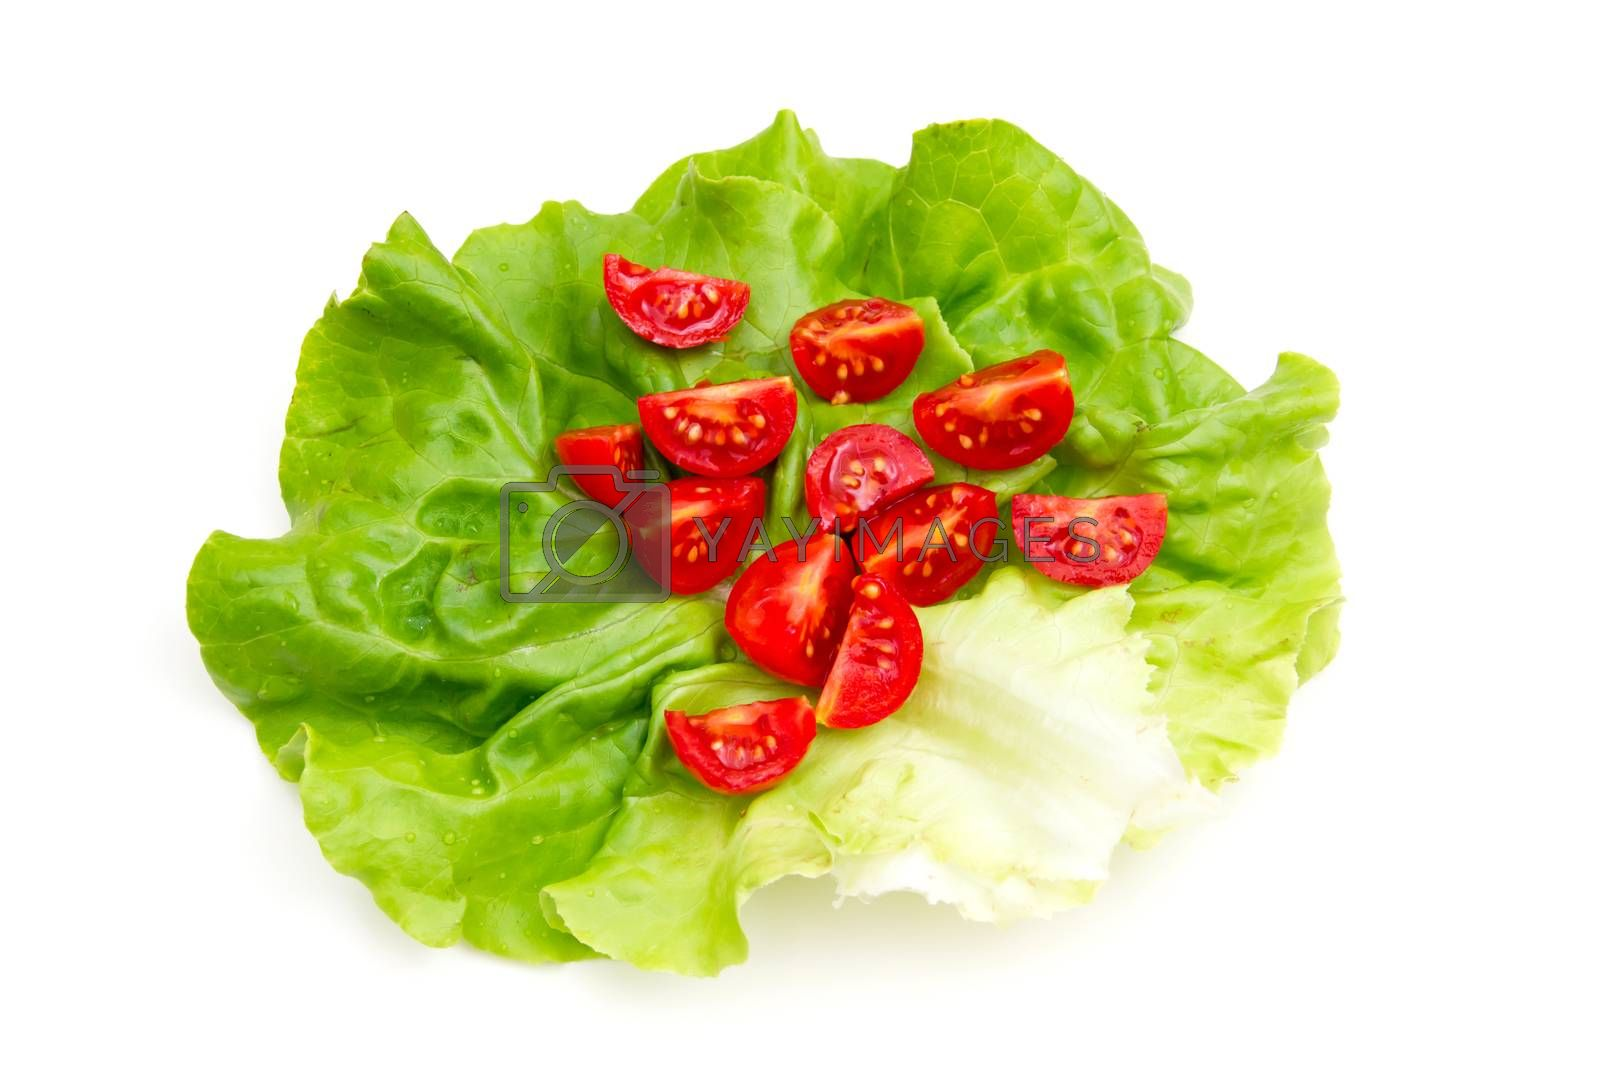 Cherry tomatoes on lettuce on white background